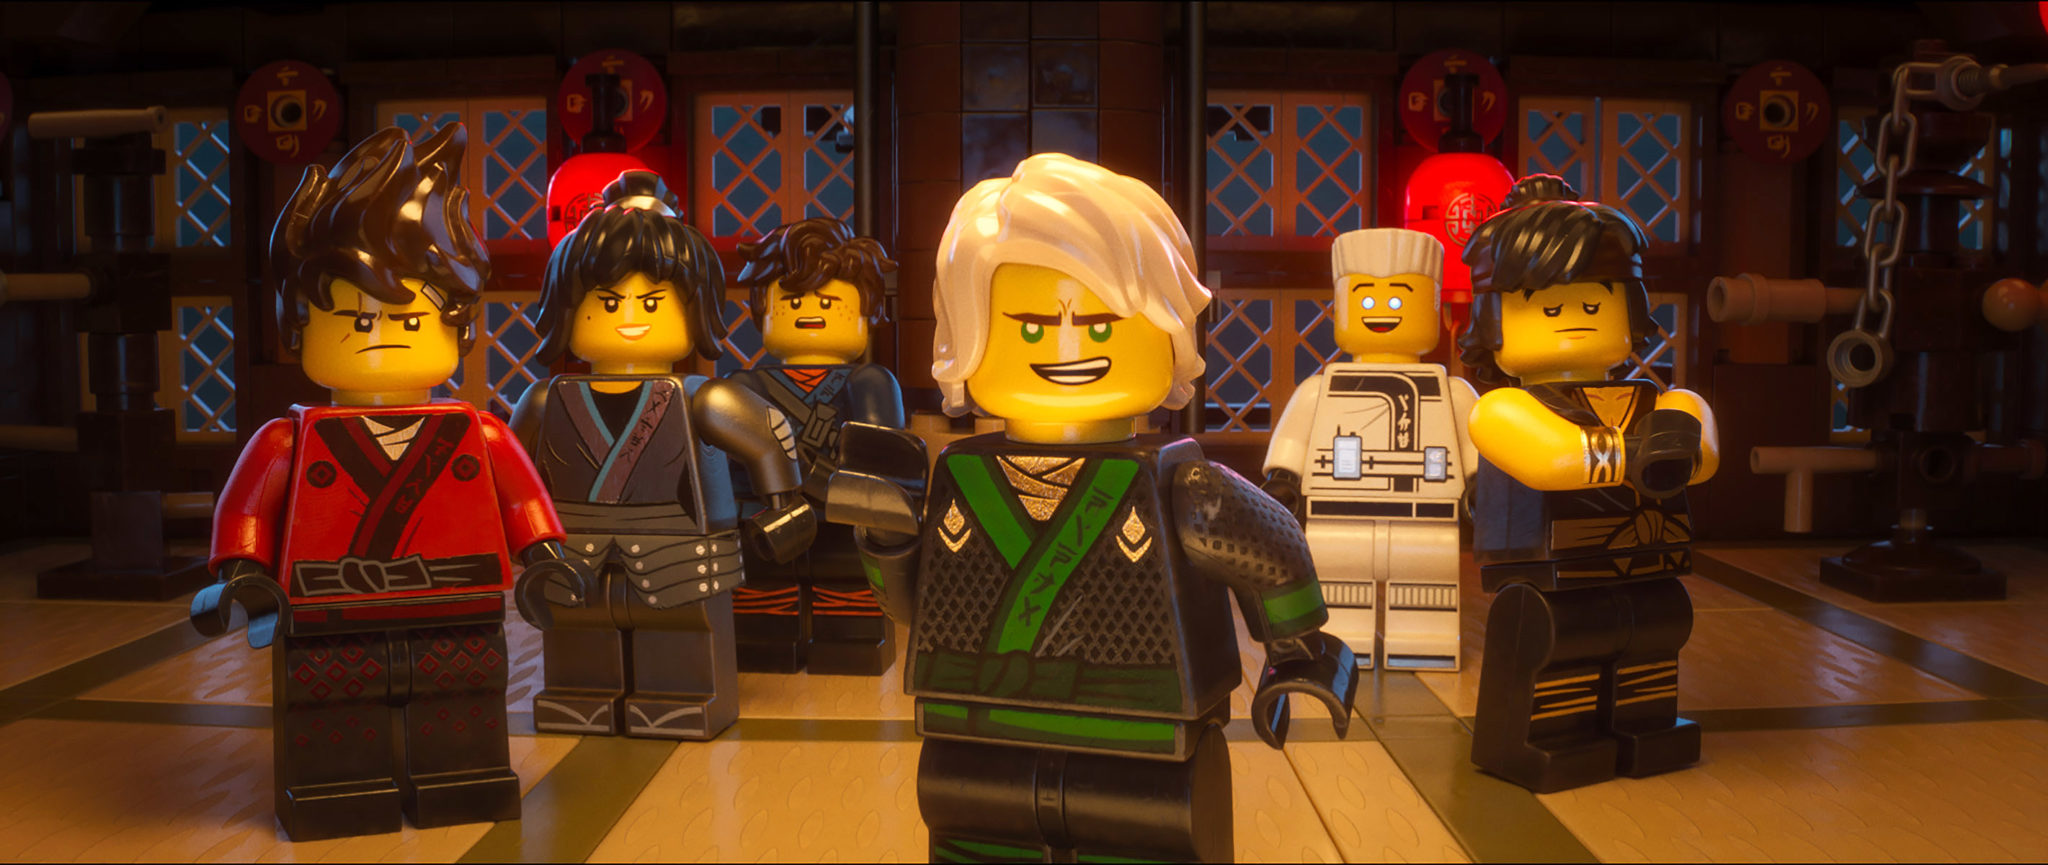 'The LEGO Ninjago Movie' is an engaging exercise in diminishing returns